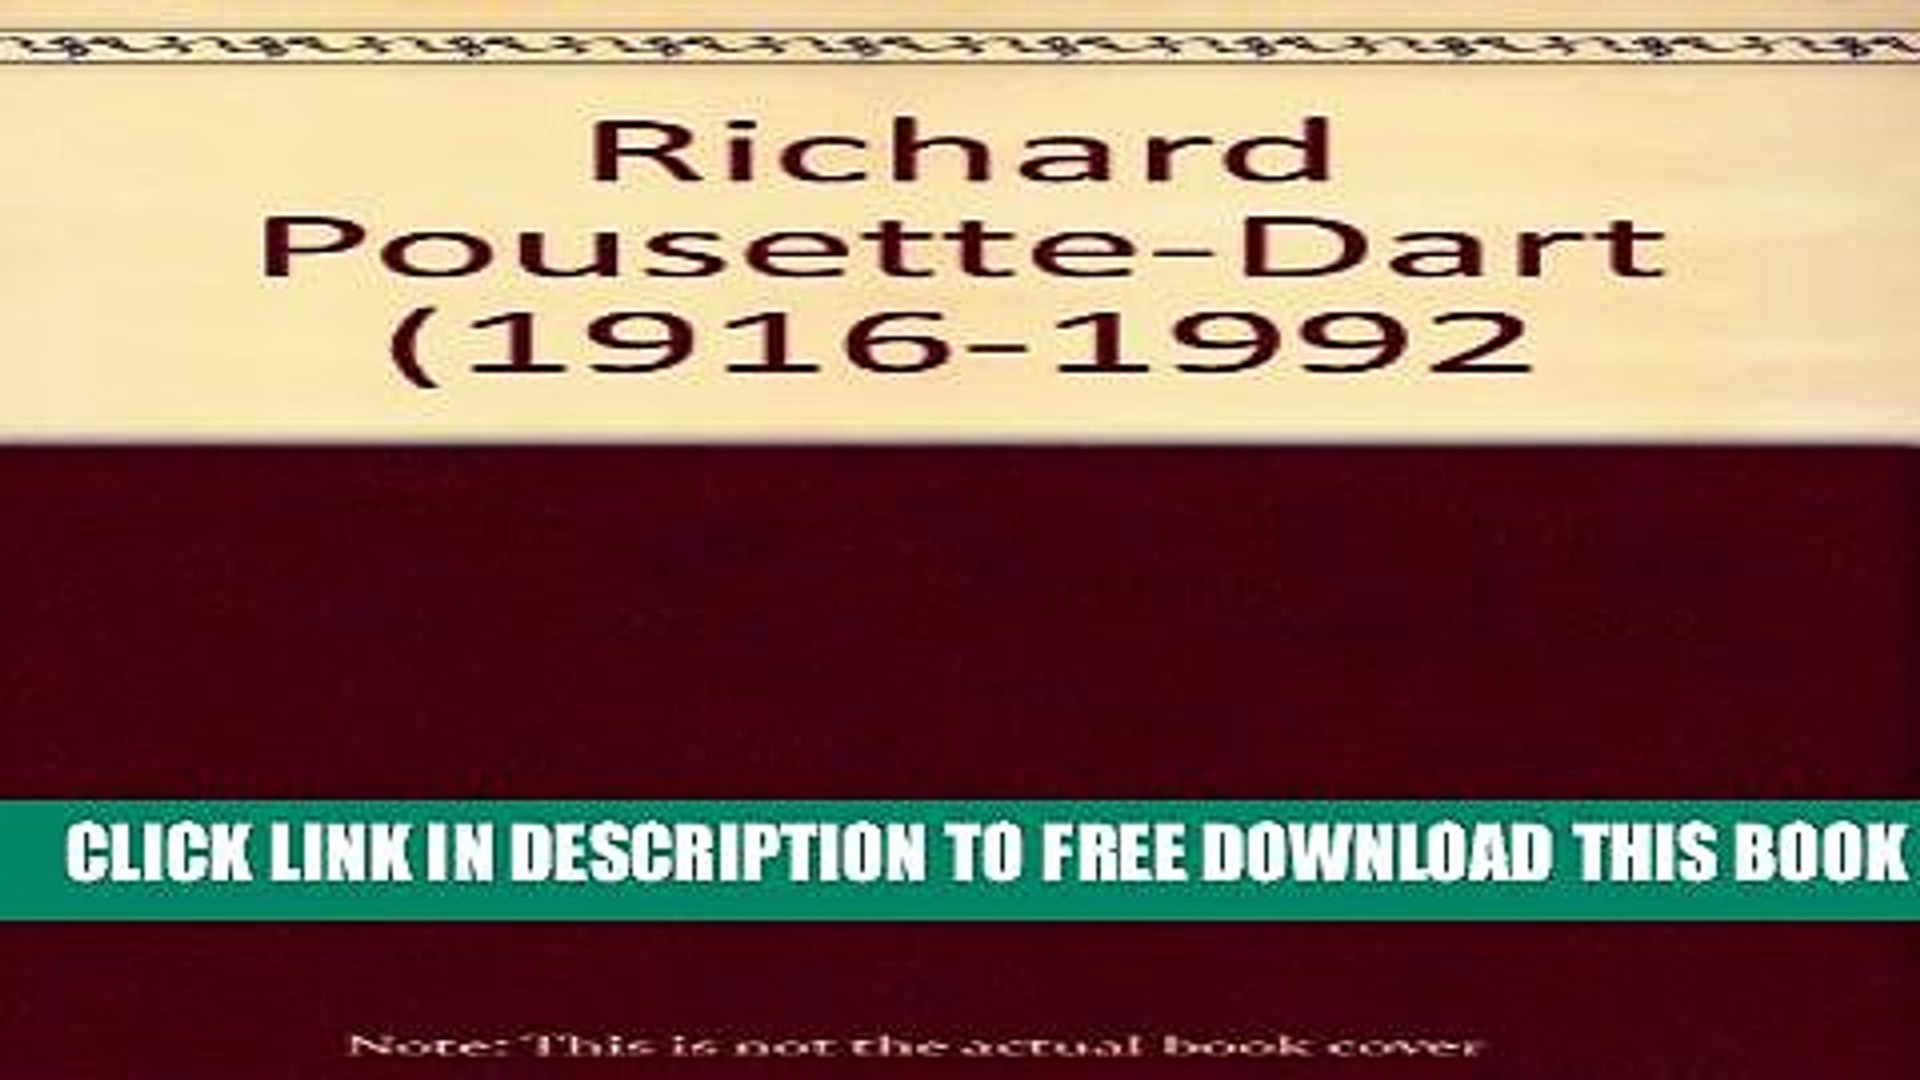 [Download] Richard Pousette-Dart (1916-1992 Hardcover Free